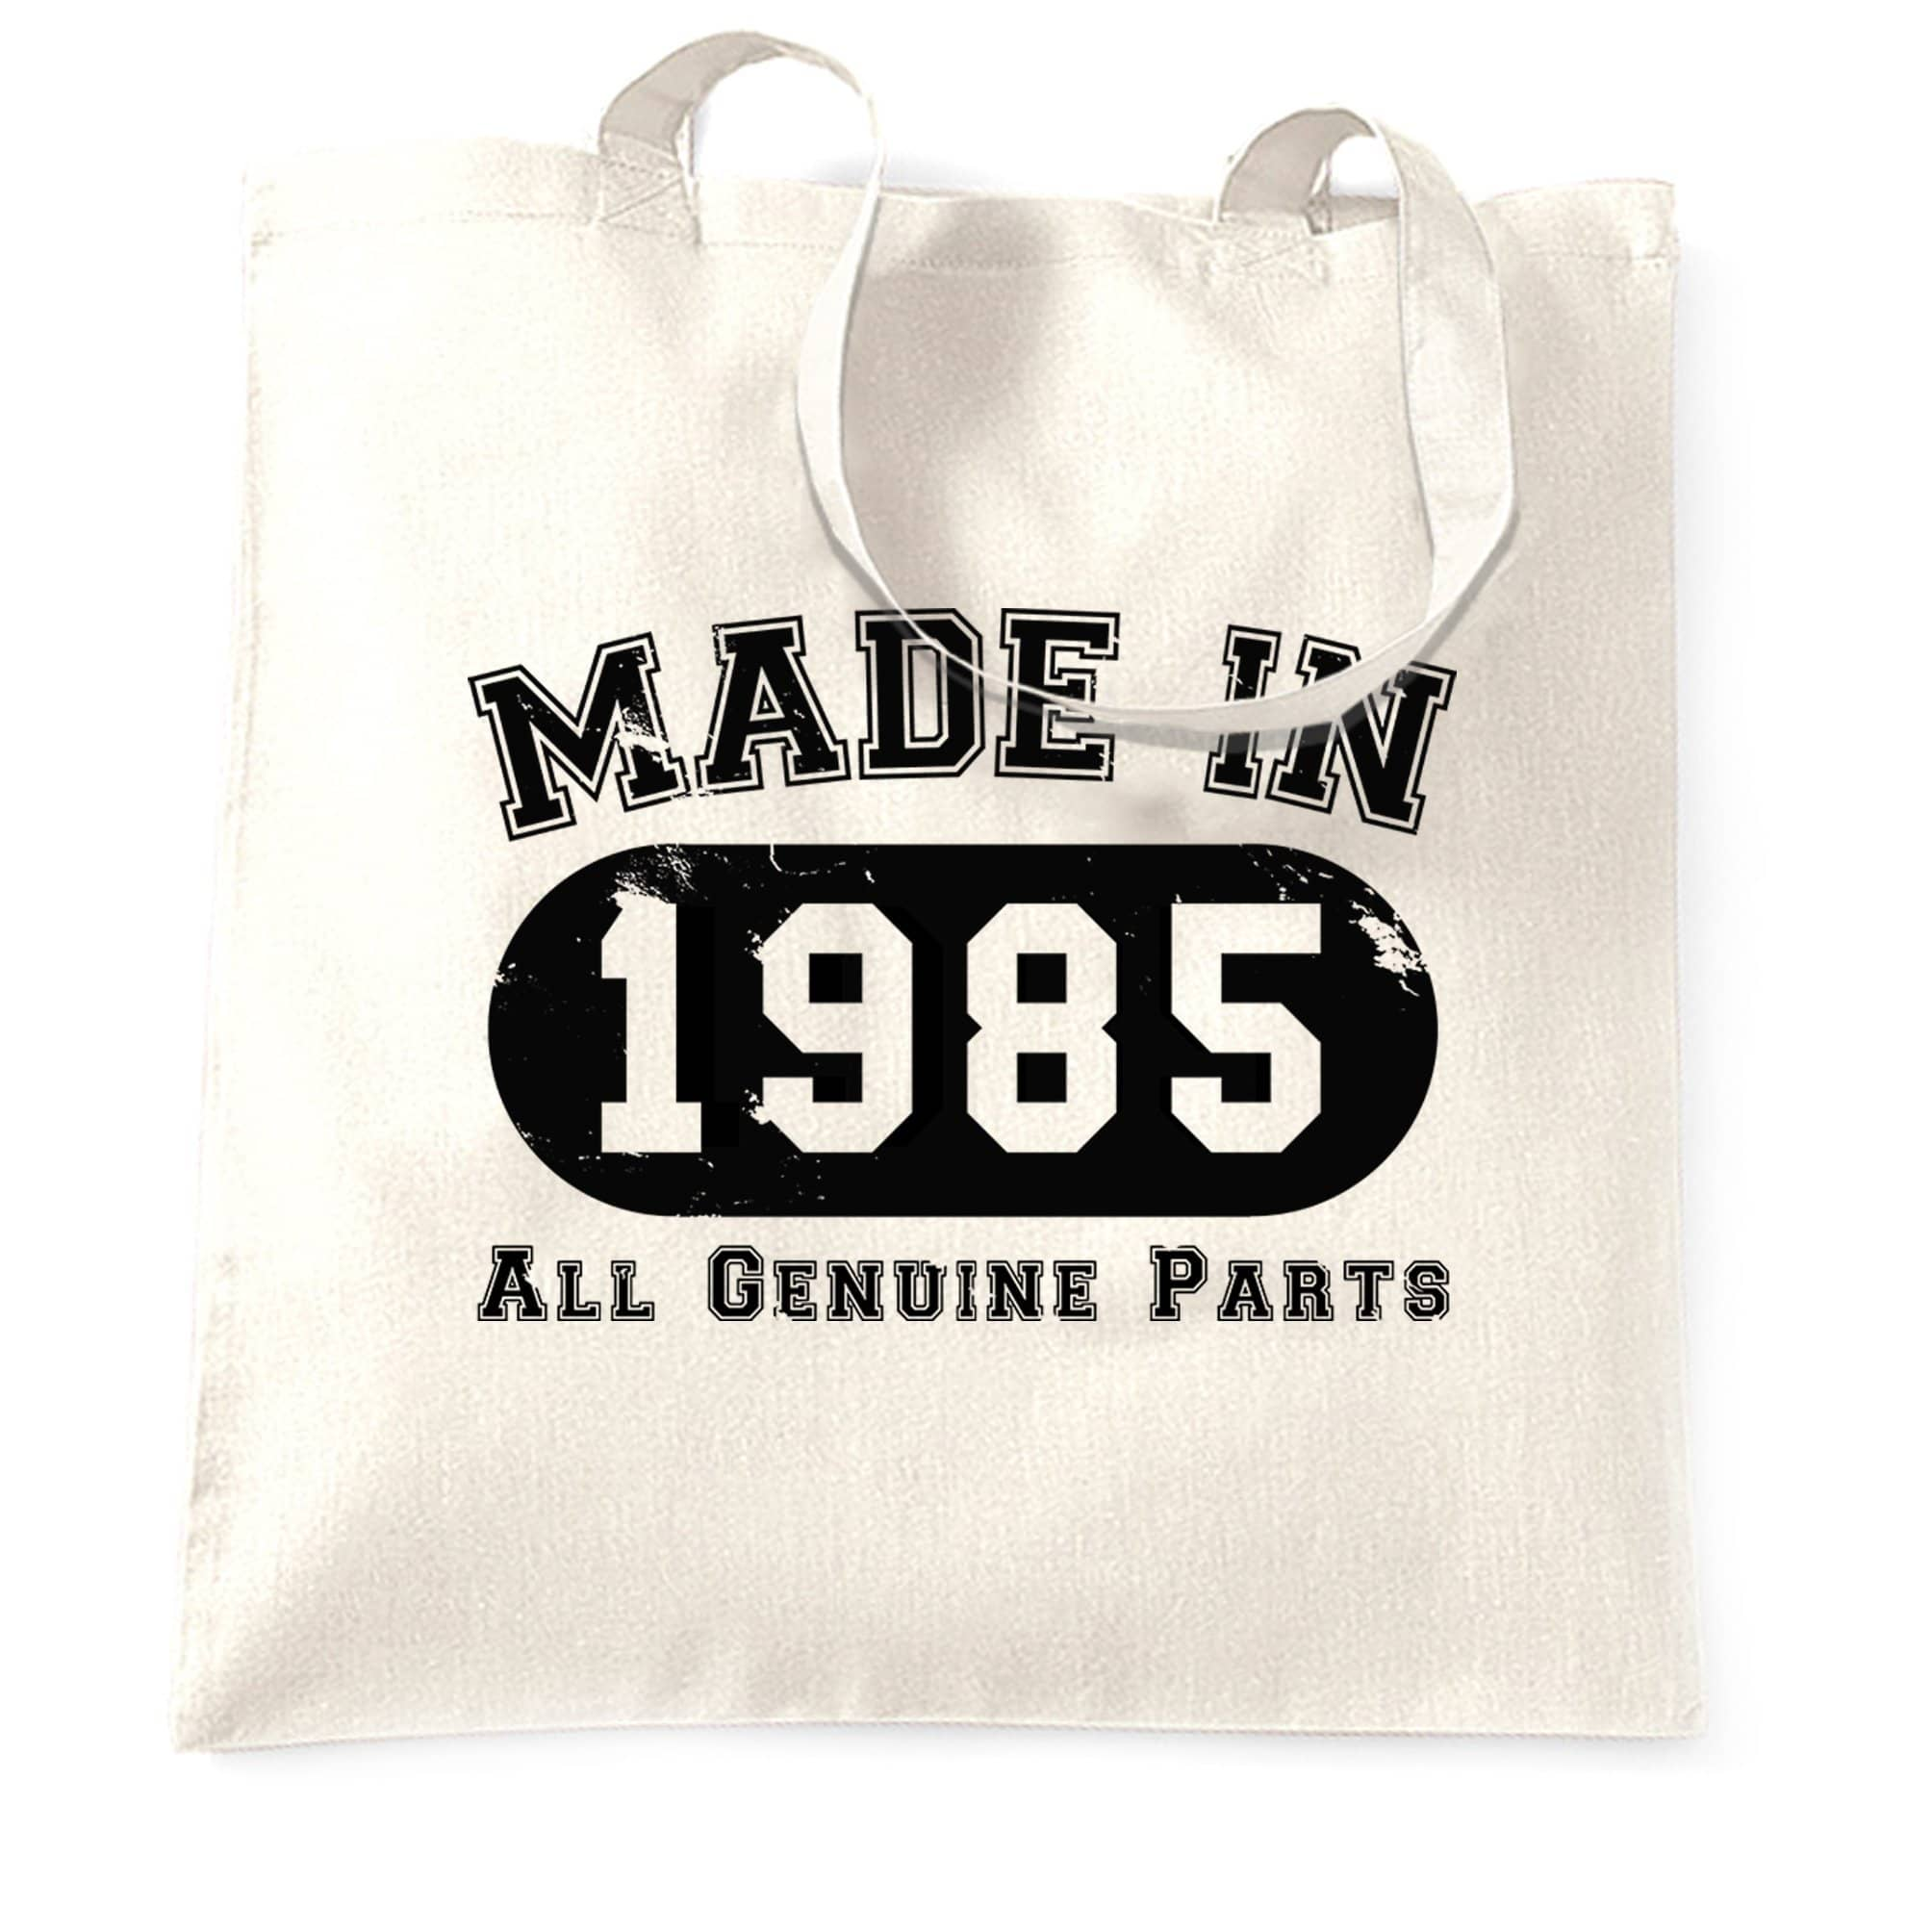 Birthday Tote Bag Made in 1985 All Genuine Parts